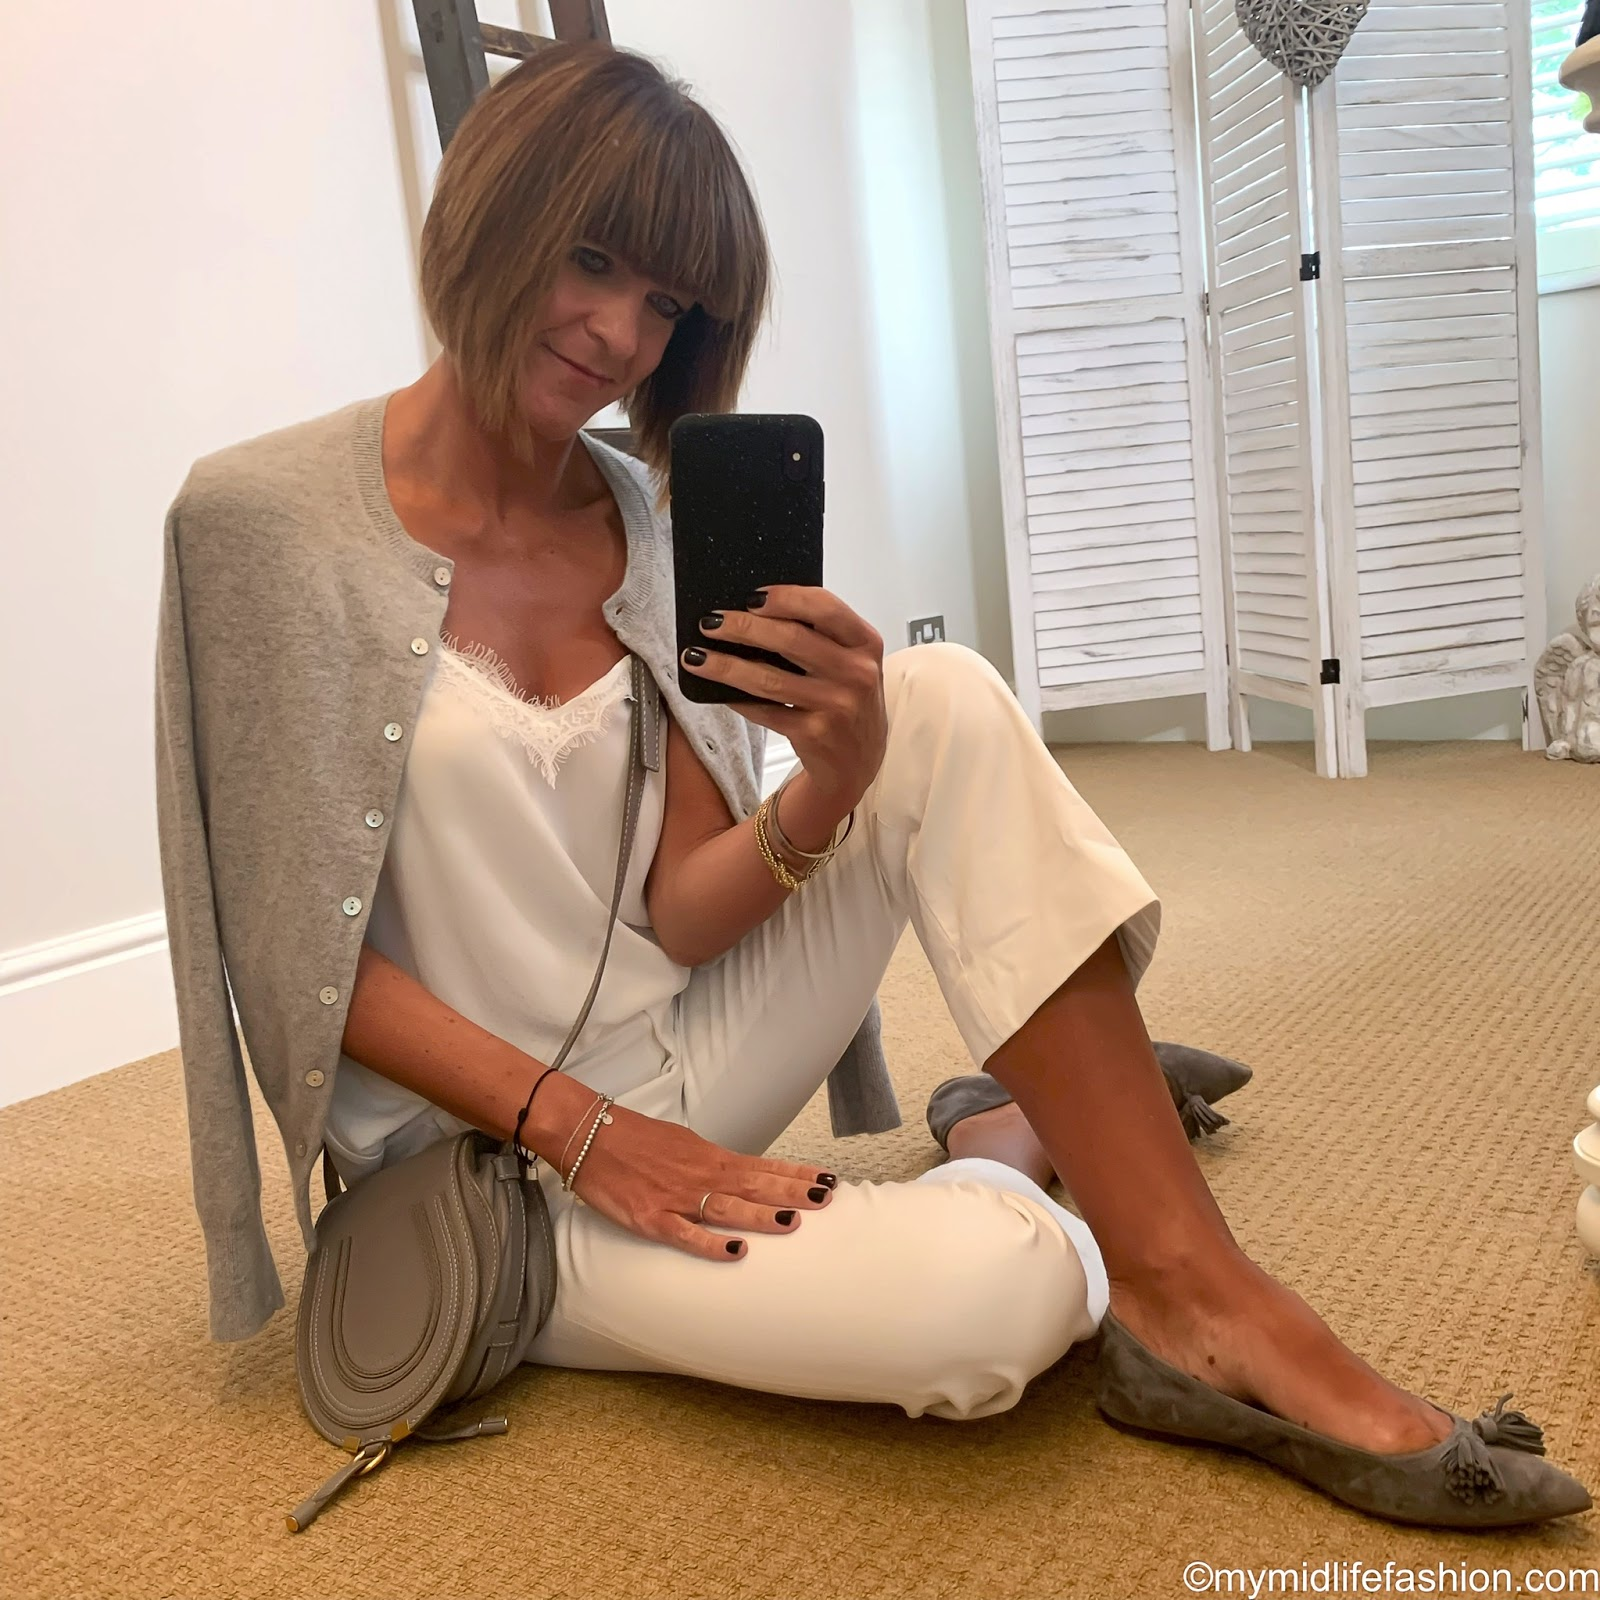 my midlife fashion, marks and Spencer pure cashmere round neck cardigan, Zara lace trim camisole, j crew cropped kick flare trousers, Chloe marci small cross body bag, j crew suede pointed tassel flats